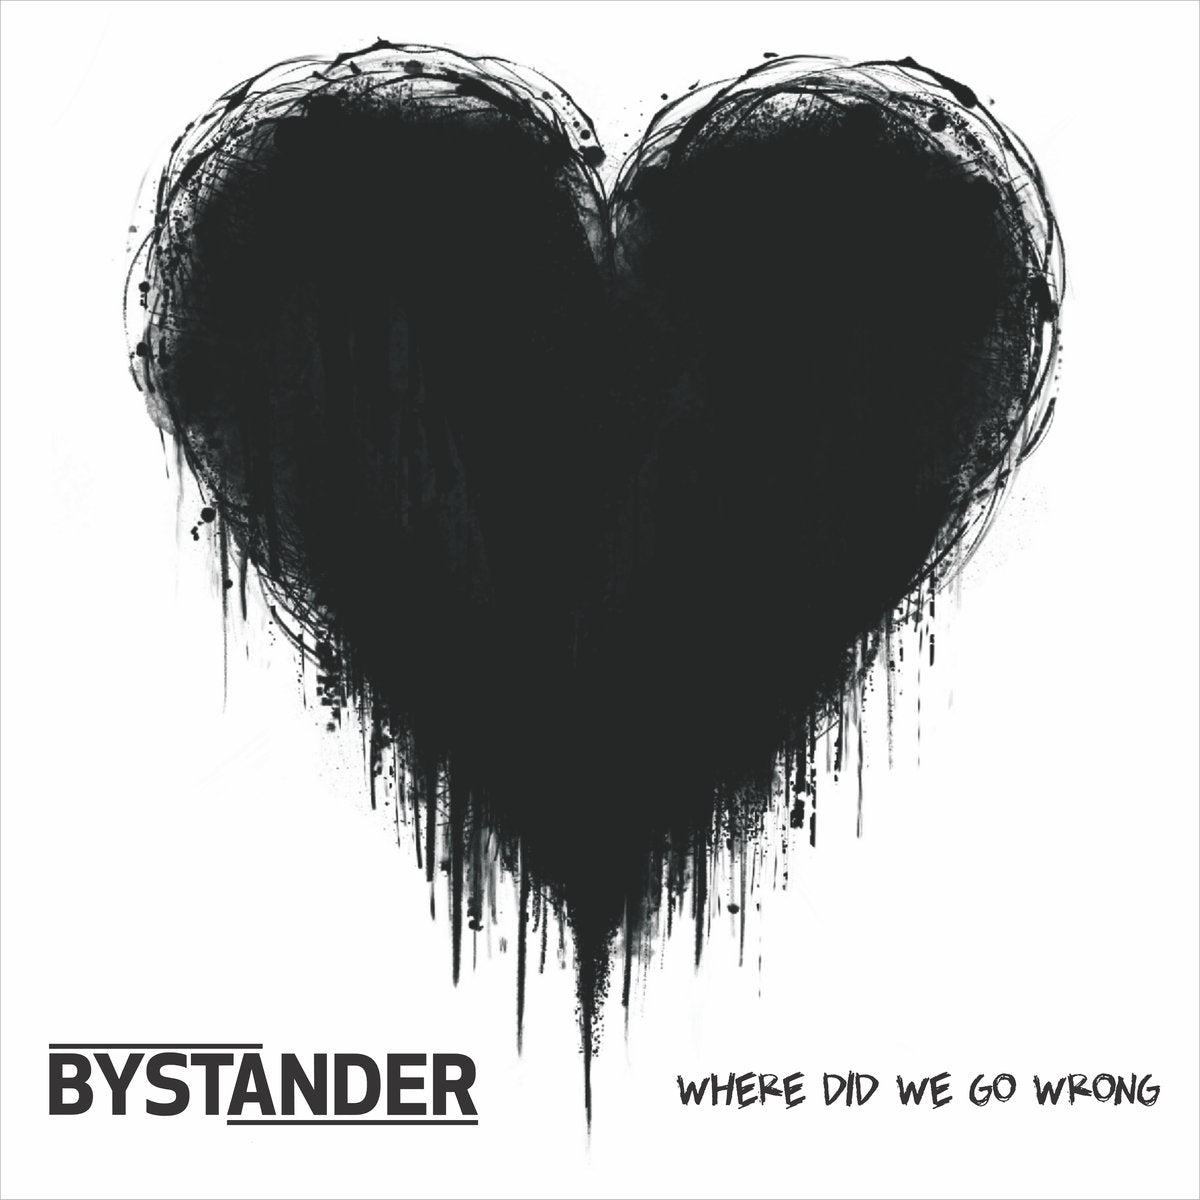 BYSTANDER 'Where Did We Go Wrong' LP / WHITE & BLACK MARBLE SPLATTER EDITION